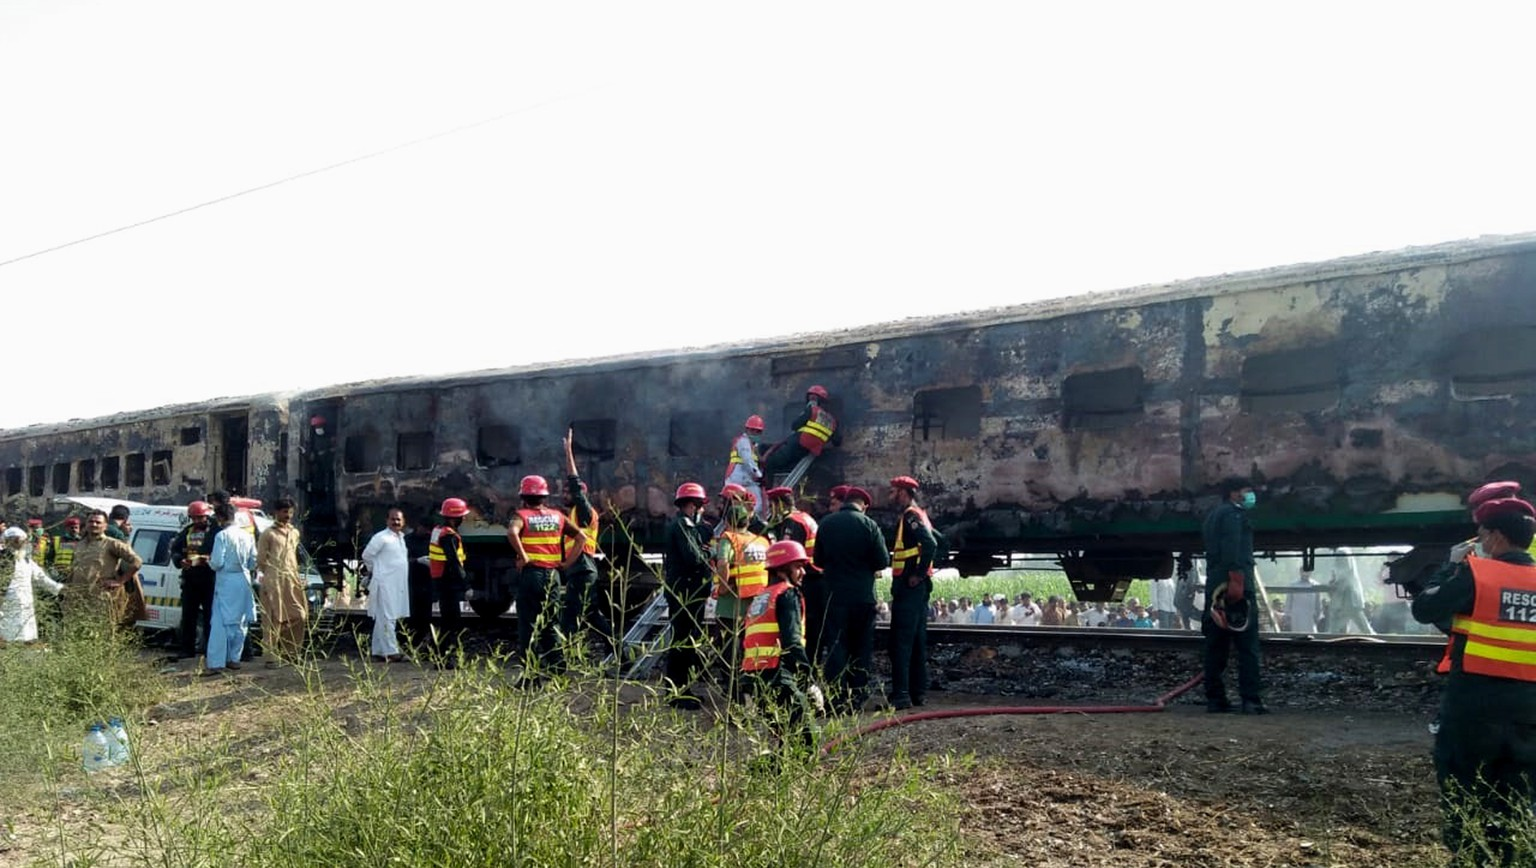 epa07961658 Rescue workers shift the bodies of the victims after a fire engulfed a passenger train near Rahim Yar Khan, Pakistan, 31 October 2019. Dozens were killed and more than 40 others injured after a fire erupted from a gas canister blast engulfed a train completely destroying at least three coaches.  EPA/STRINGER